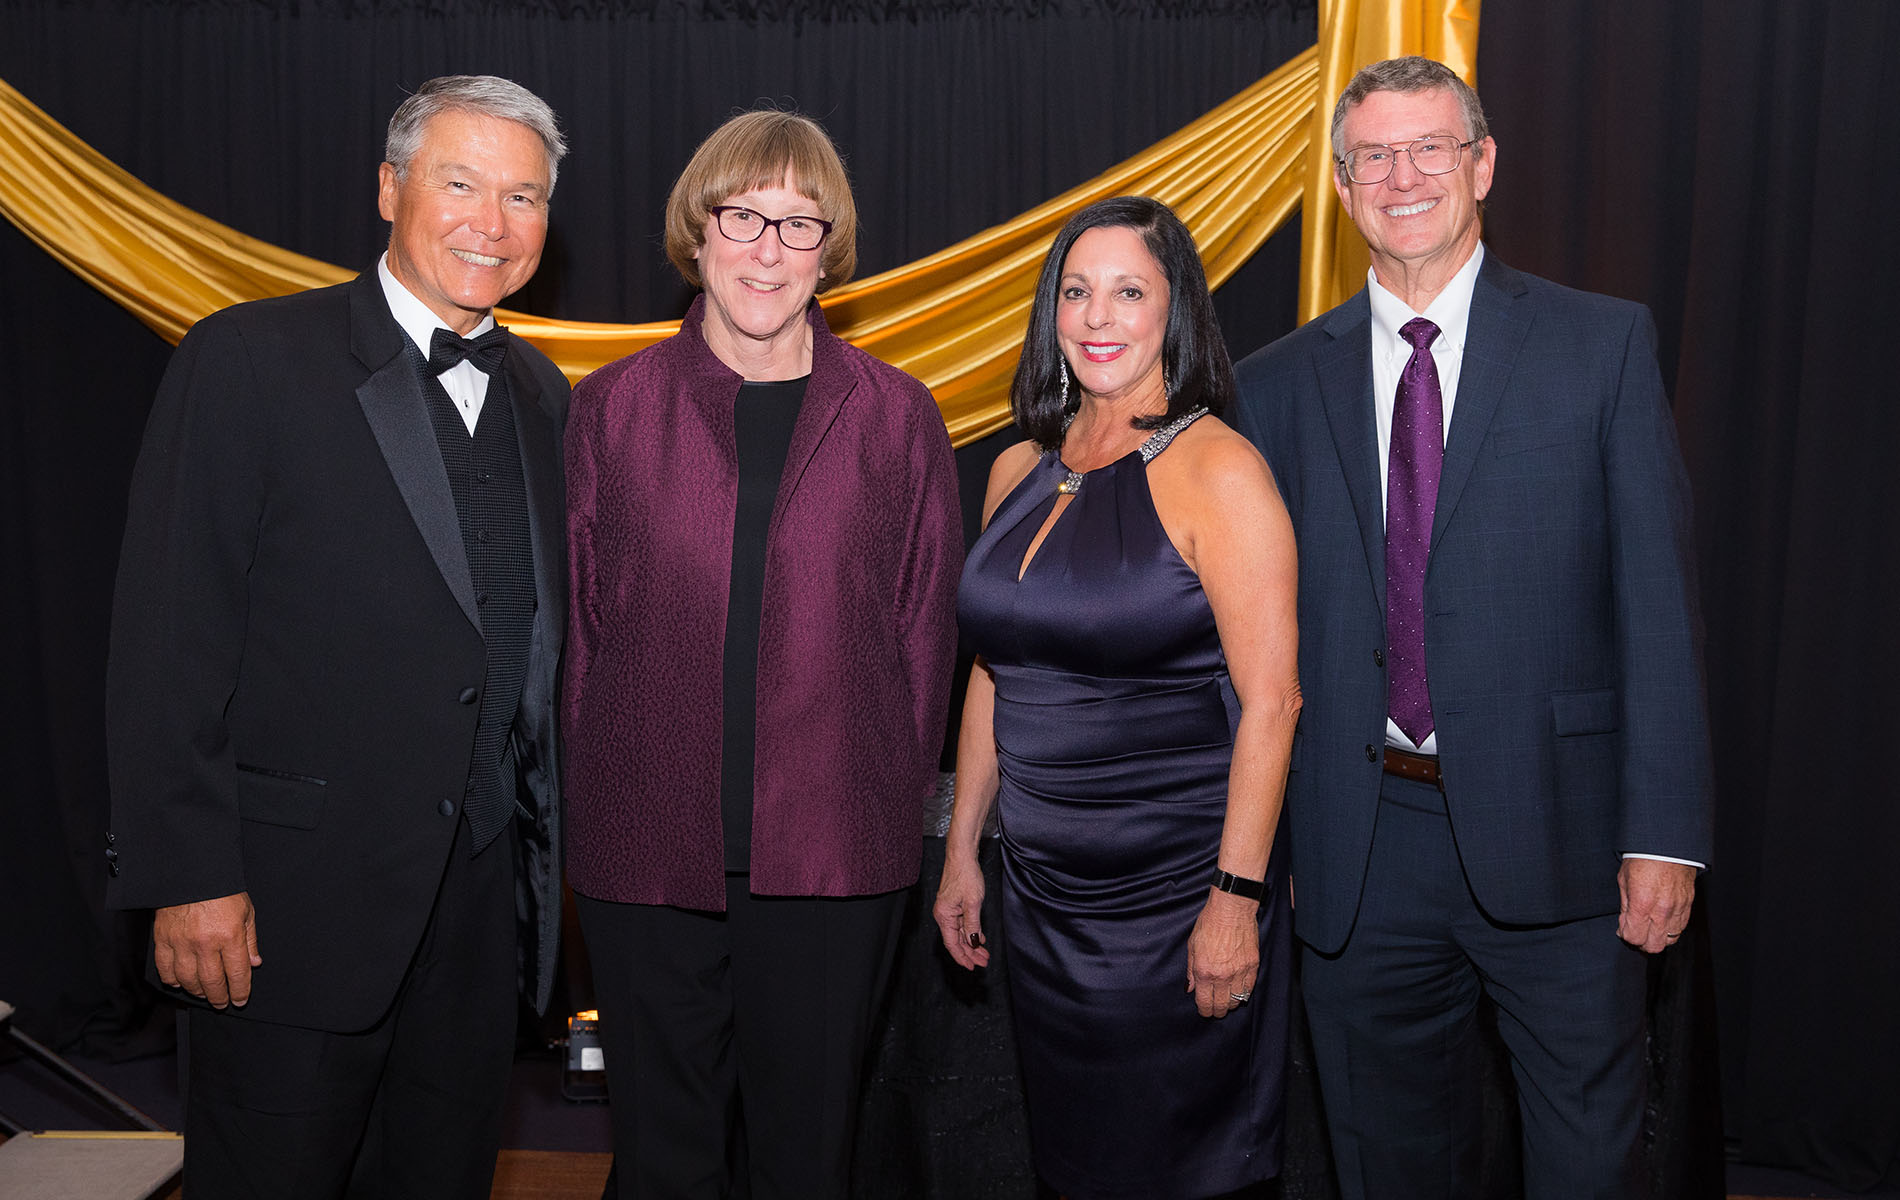 Four alumni, two men and two women, pose at a gala event